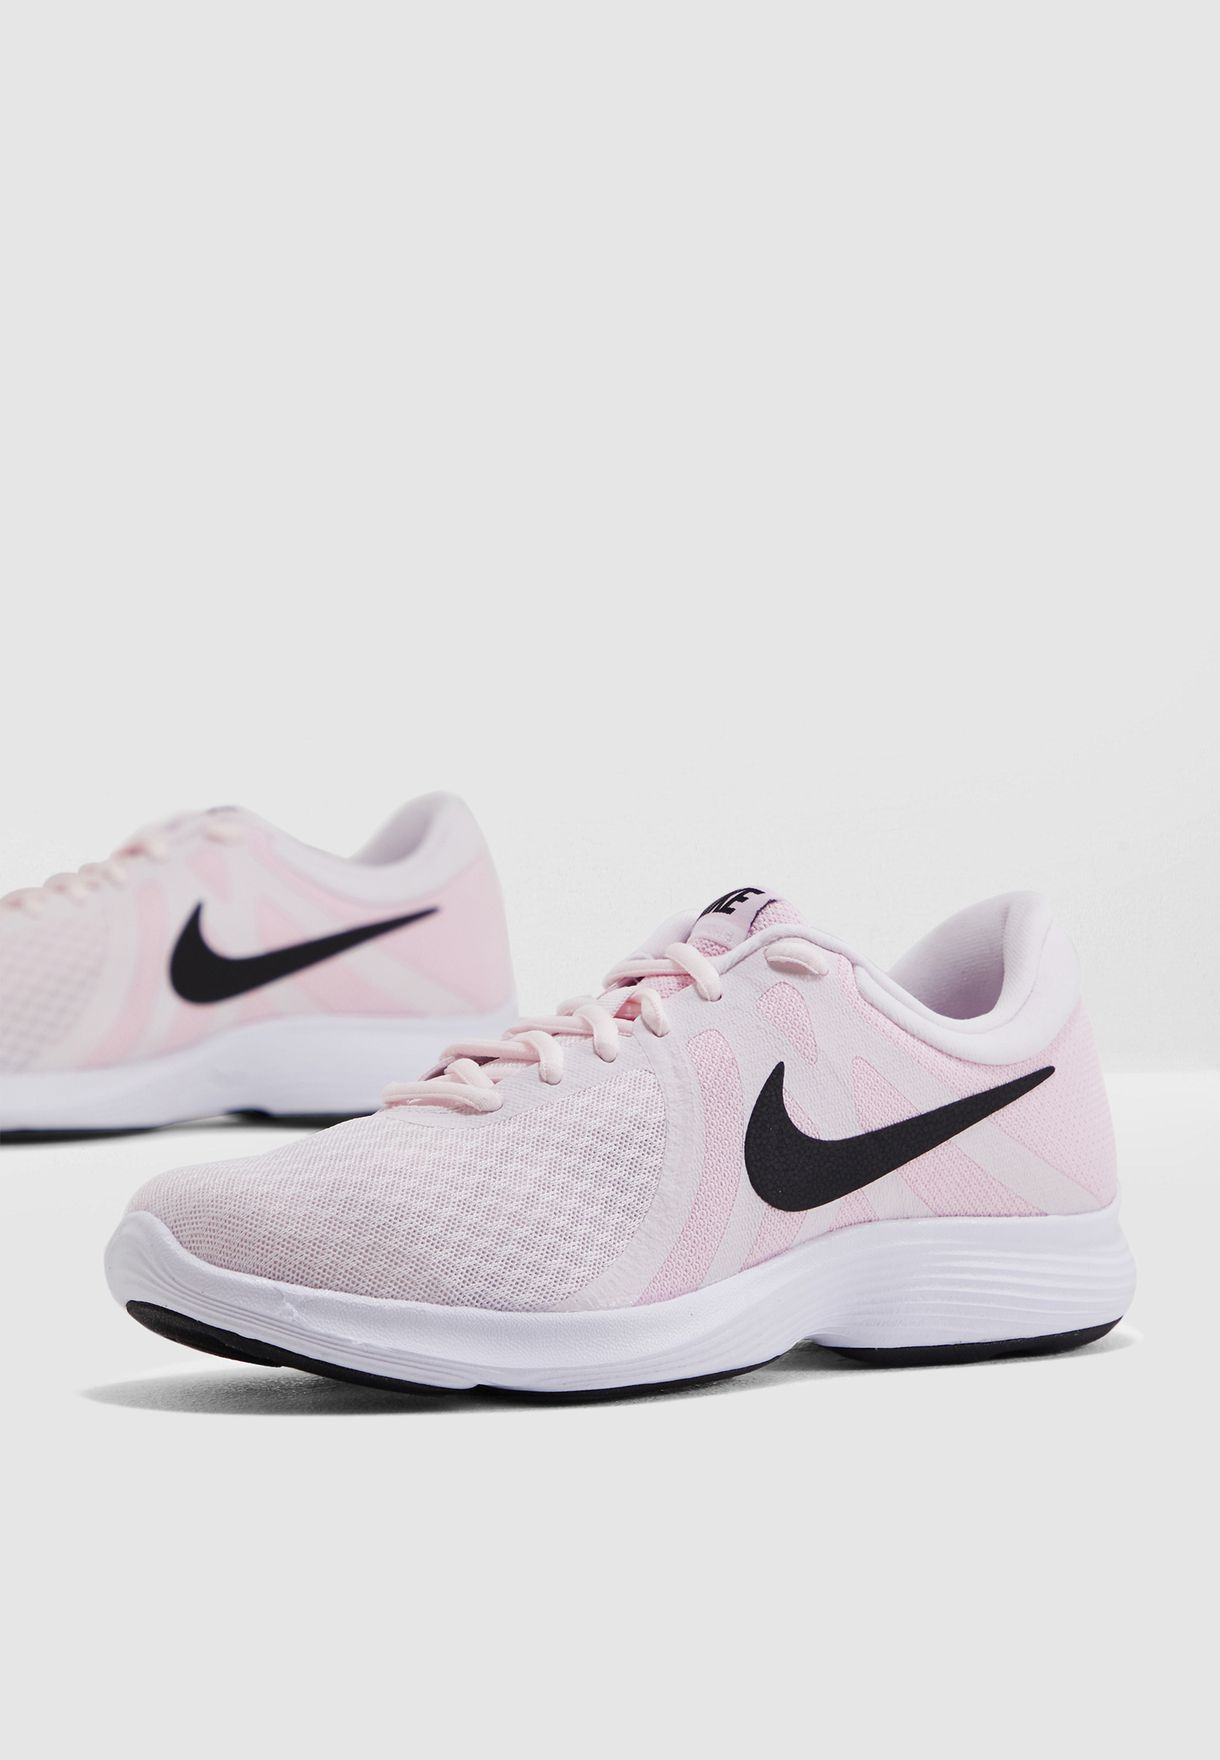 42cc9b8a82bfd Shop Nike pink Revolution 4 AJ3491-604 for Women in UAE - 72704SH09STP